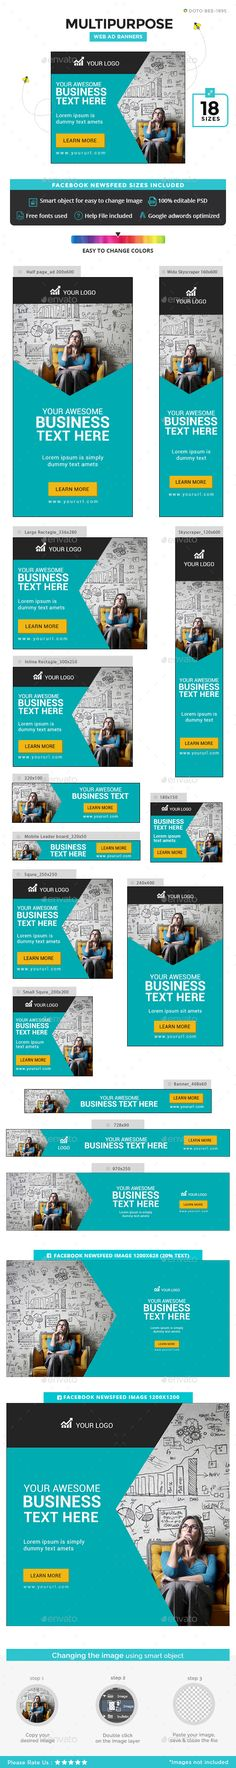 Multipurpose Banners - Banners & Ads Web Elements Download here  : https://graphicriver.net/item/multipurpose-banners/19316482?s_rank=10&ref=Al-fatih